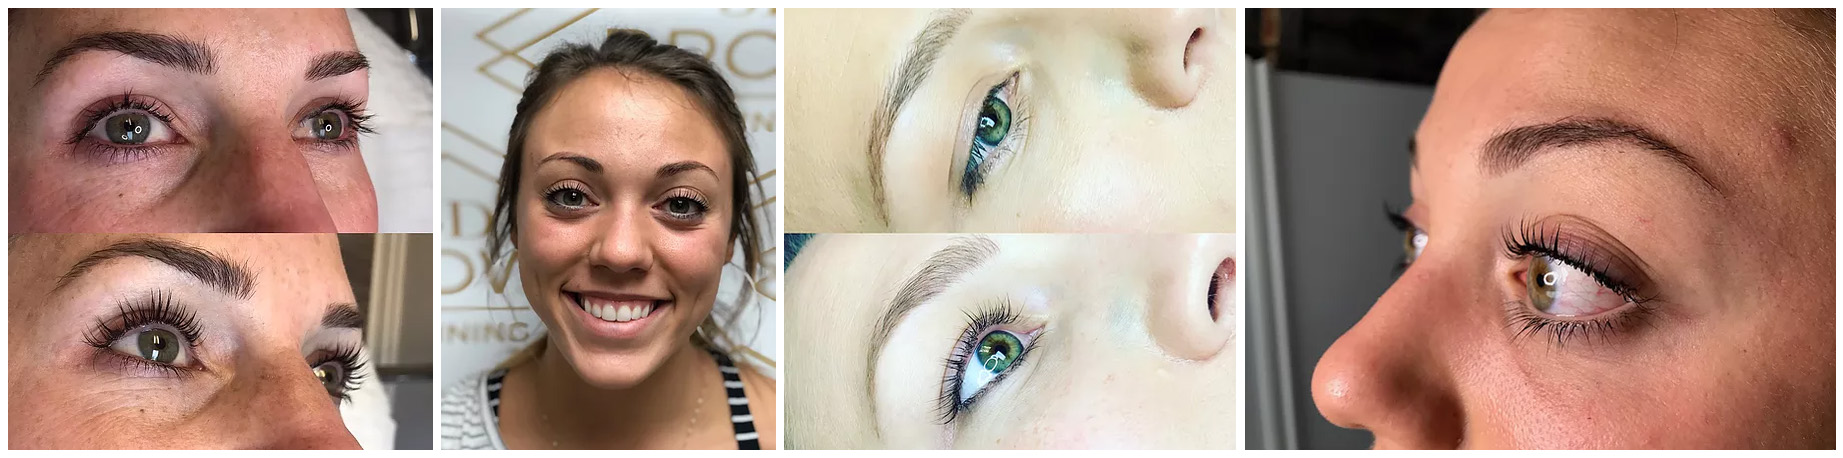 3D Lash Lift Before and After - 3D BROWS ACADEMY, Utah